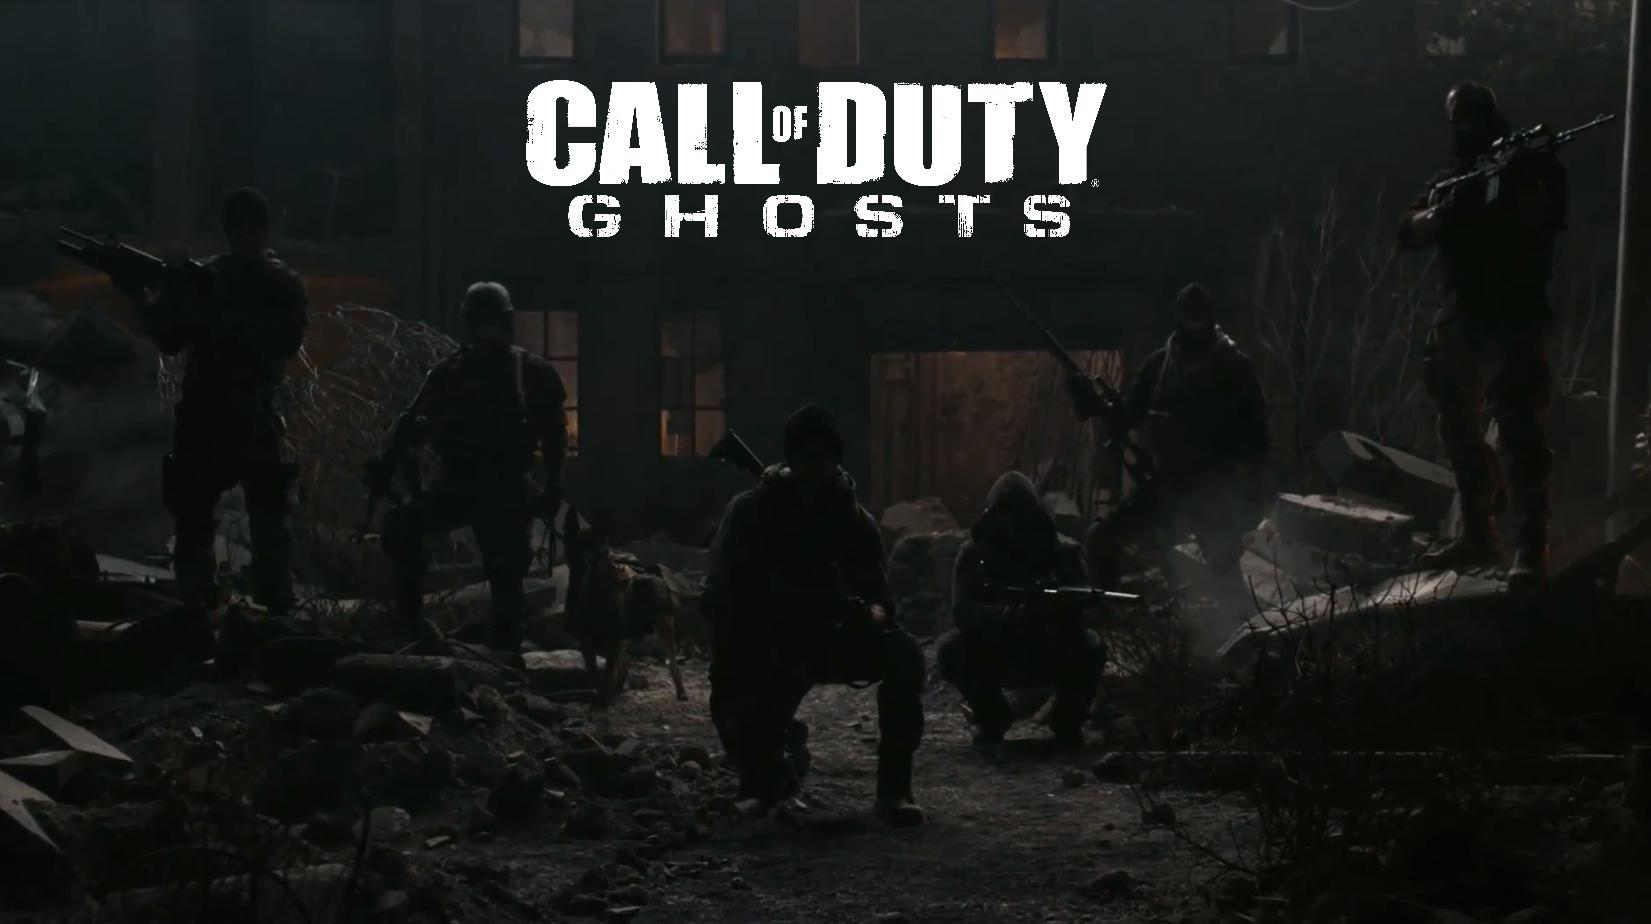 Call Of Duty Pictures Of Ghost - wallpaper hd